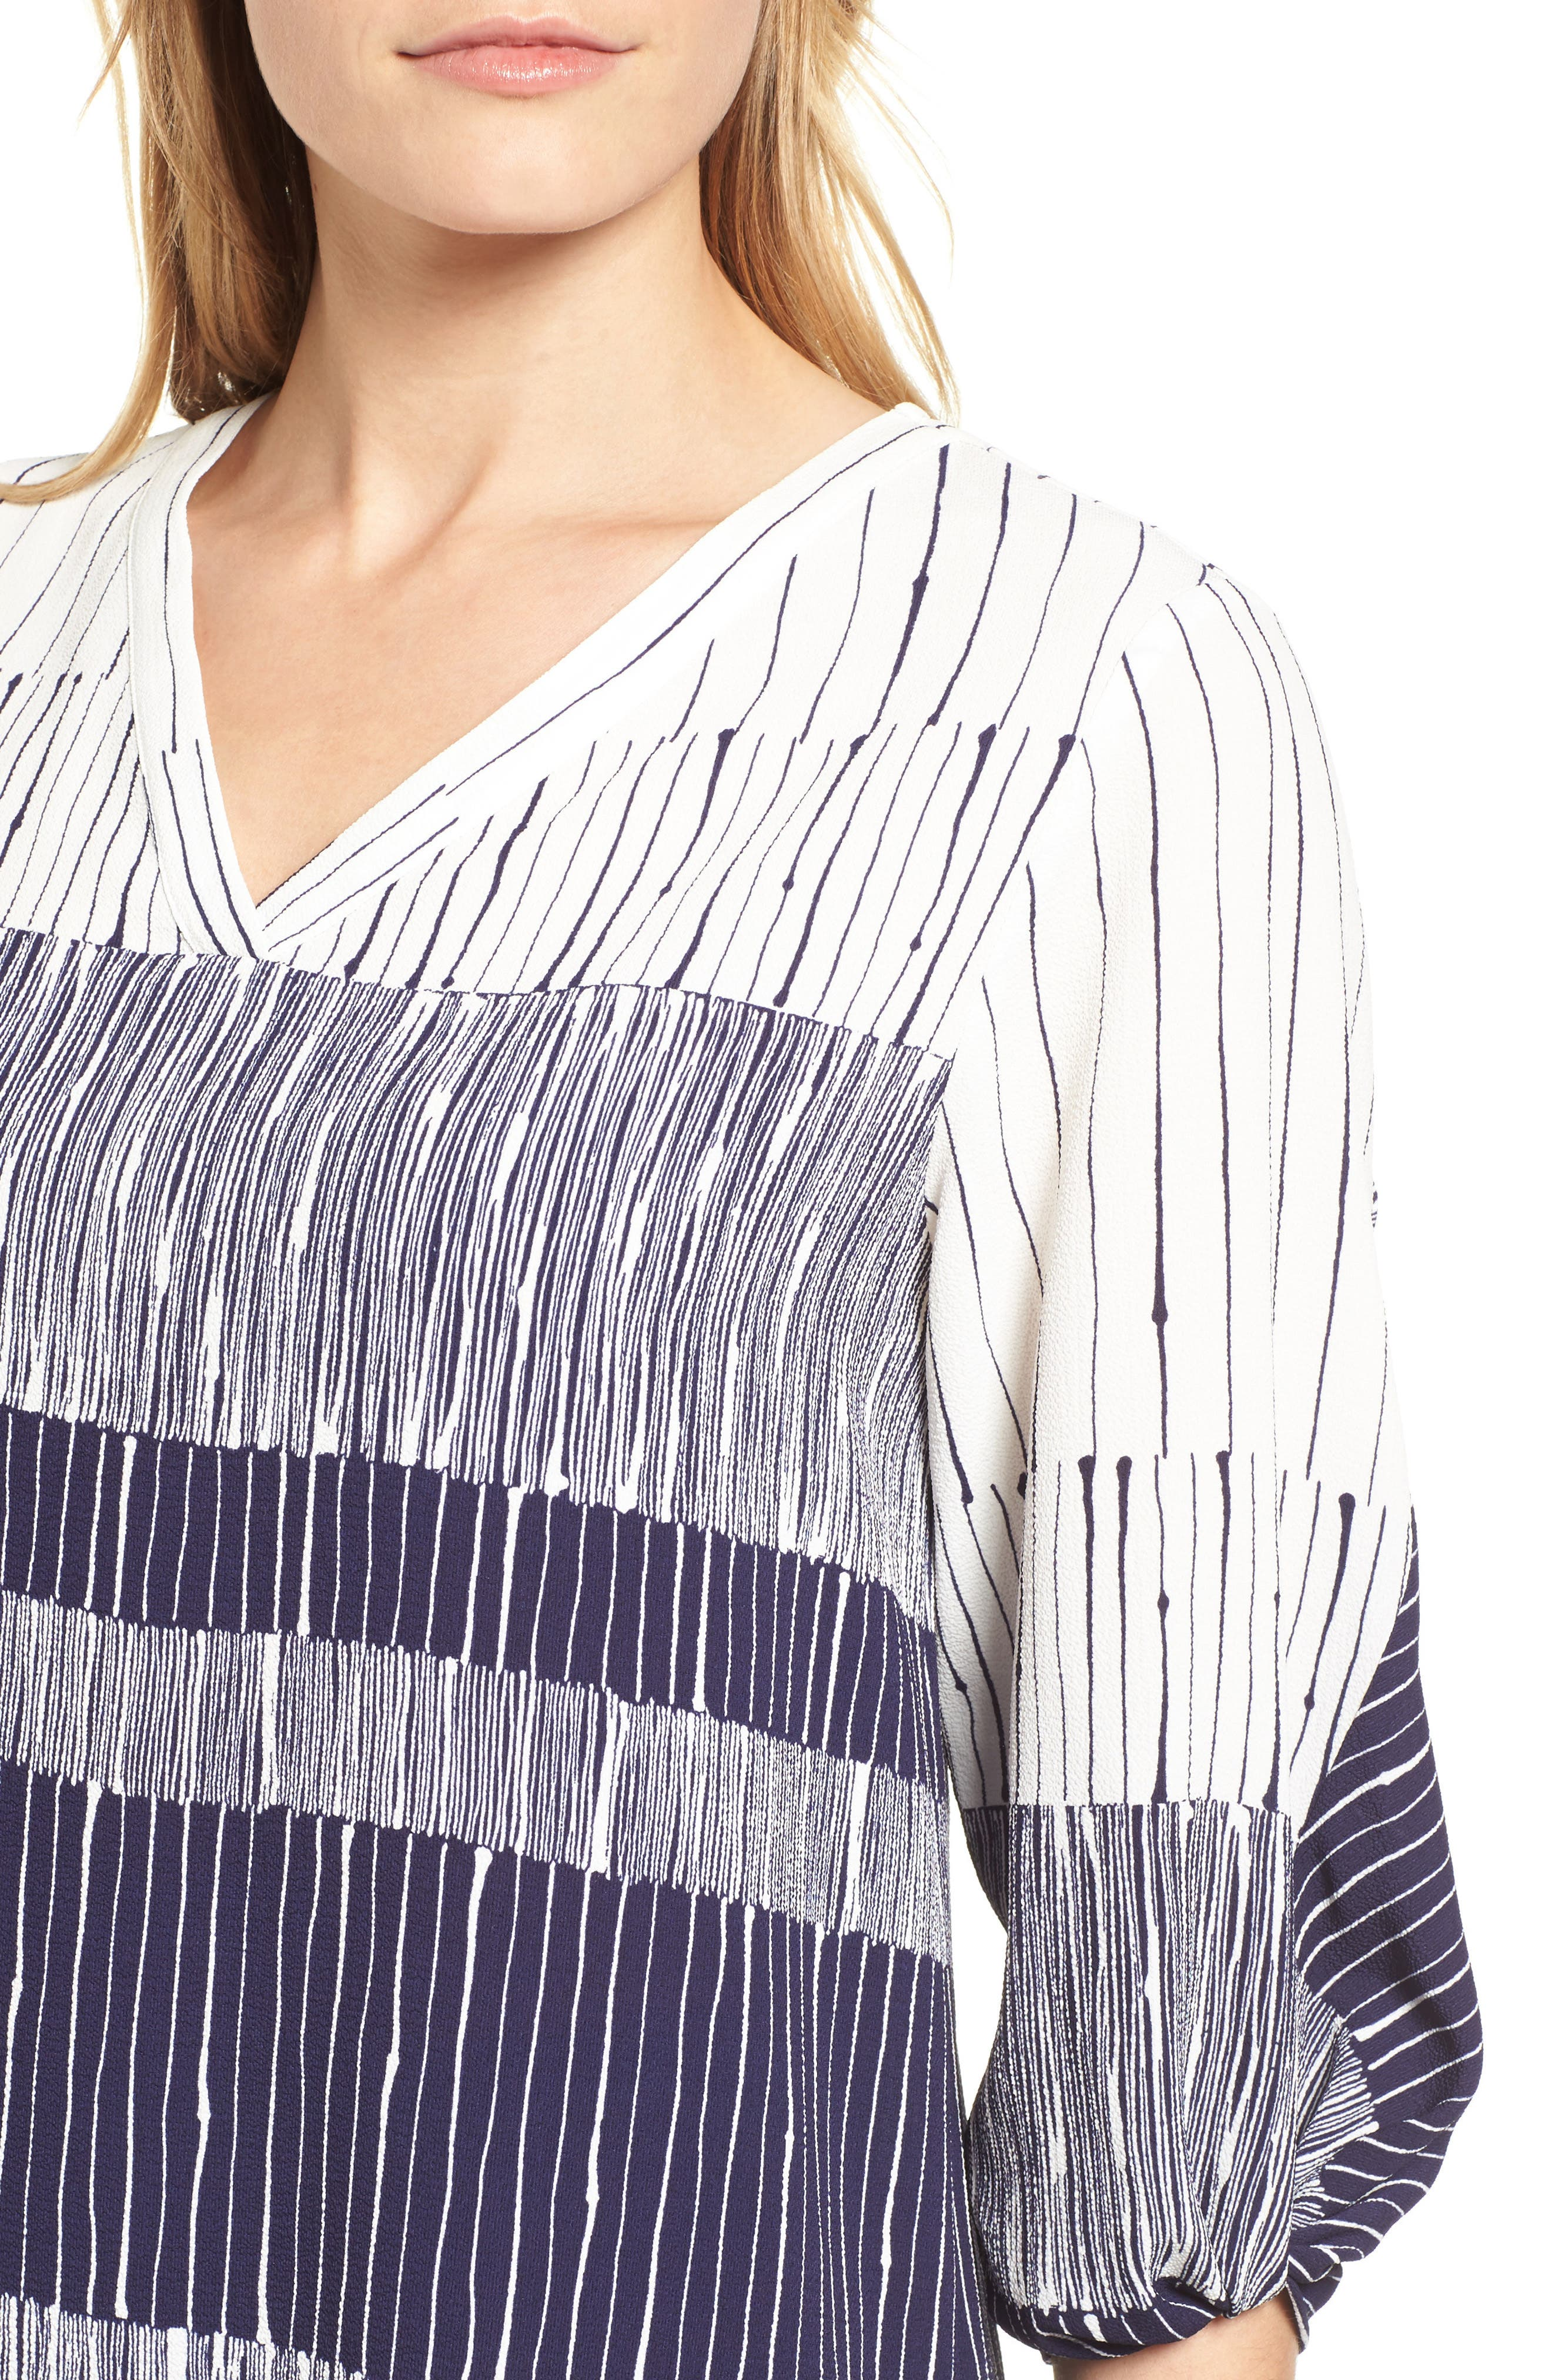 Ink Lines Blouse,                             Alternate thumbnail 4, color,                             400